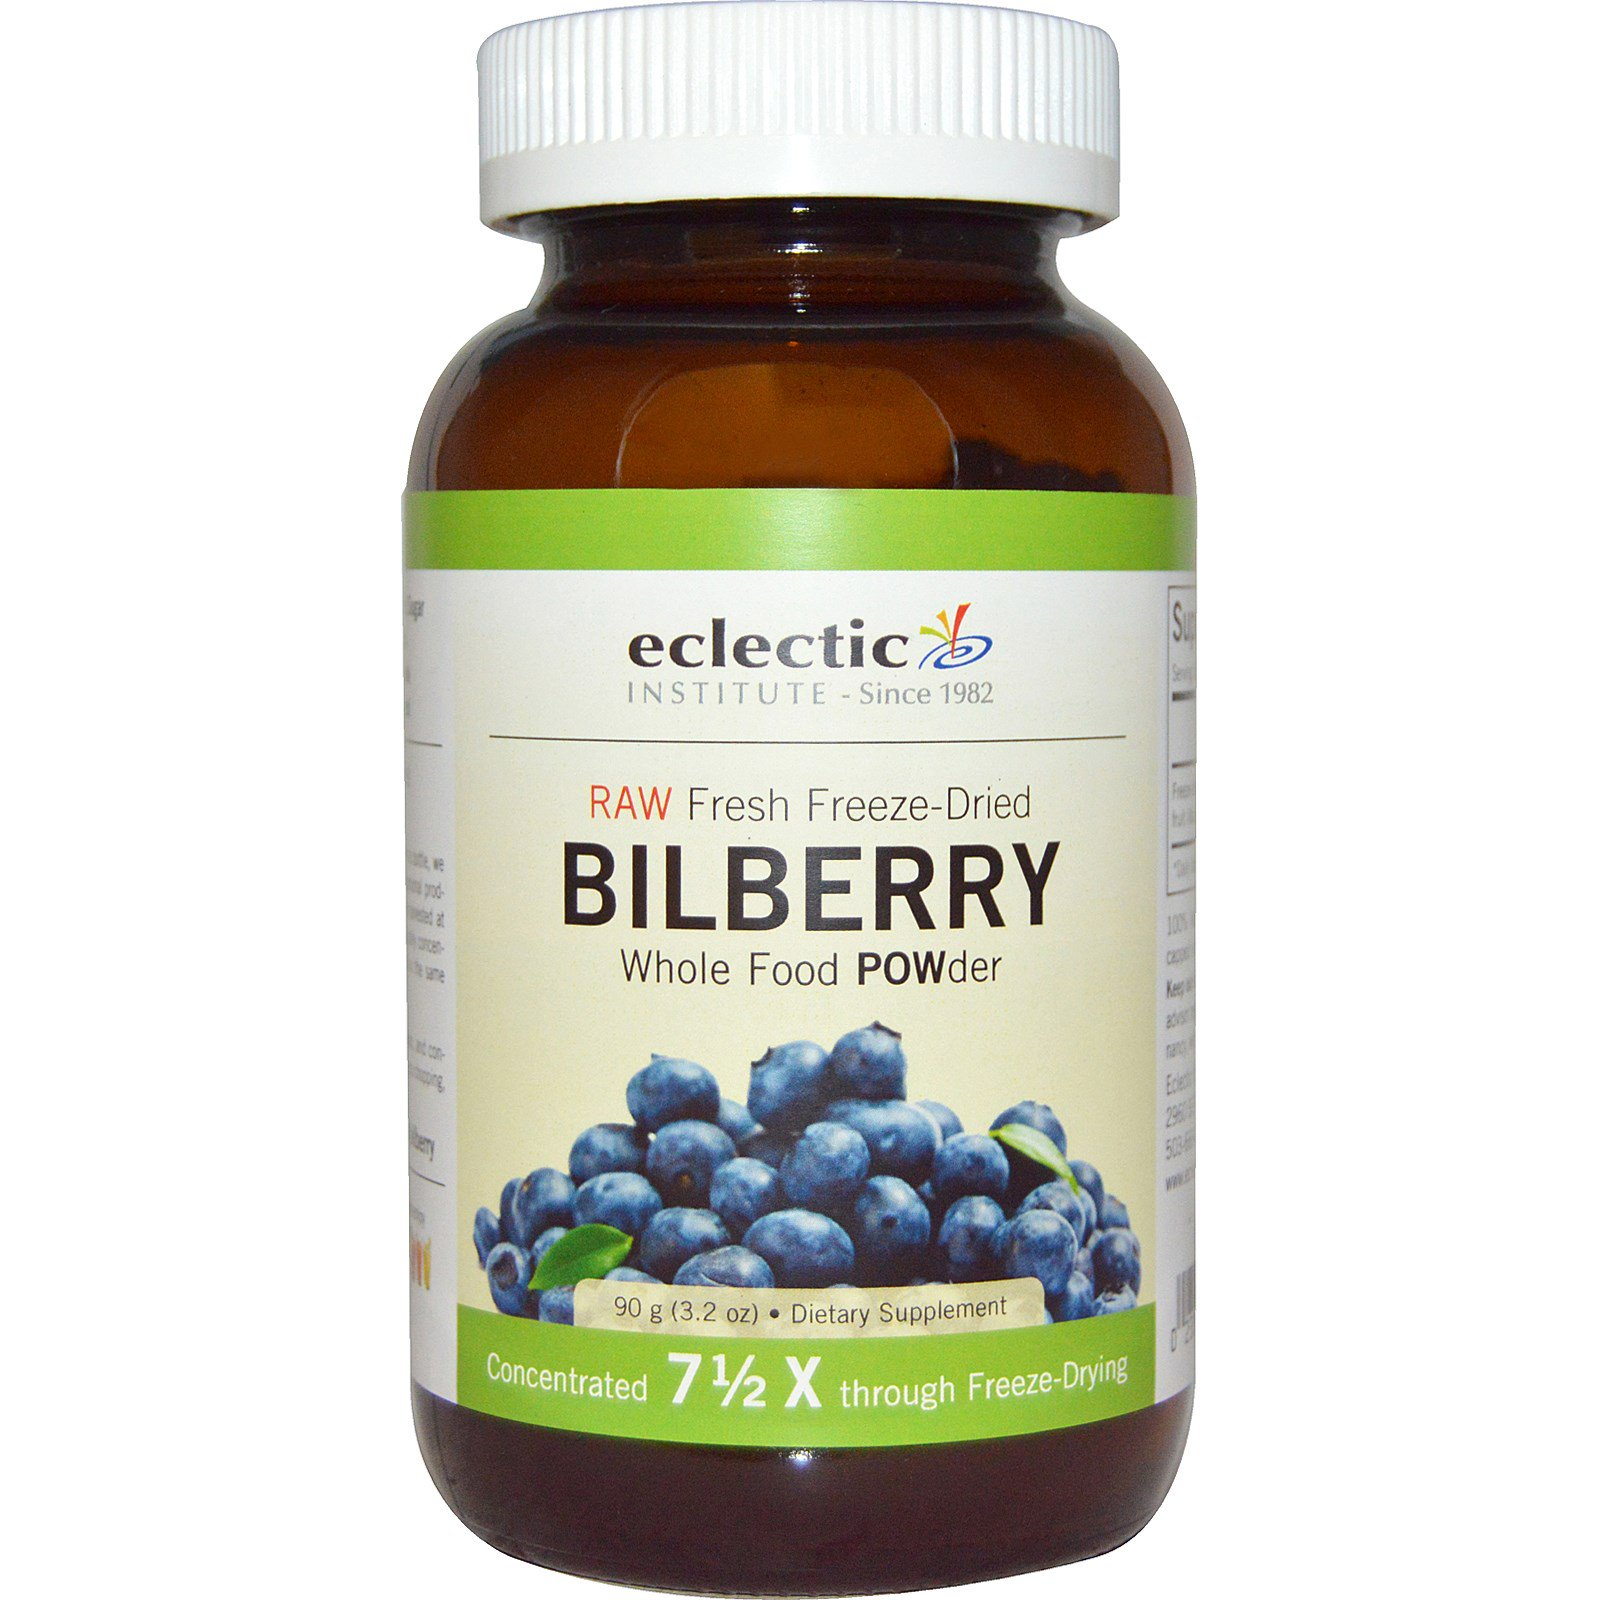 Eclectic Institute Bilberry Whole Food Powder 3 2 Oz 90 G Iherb